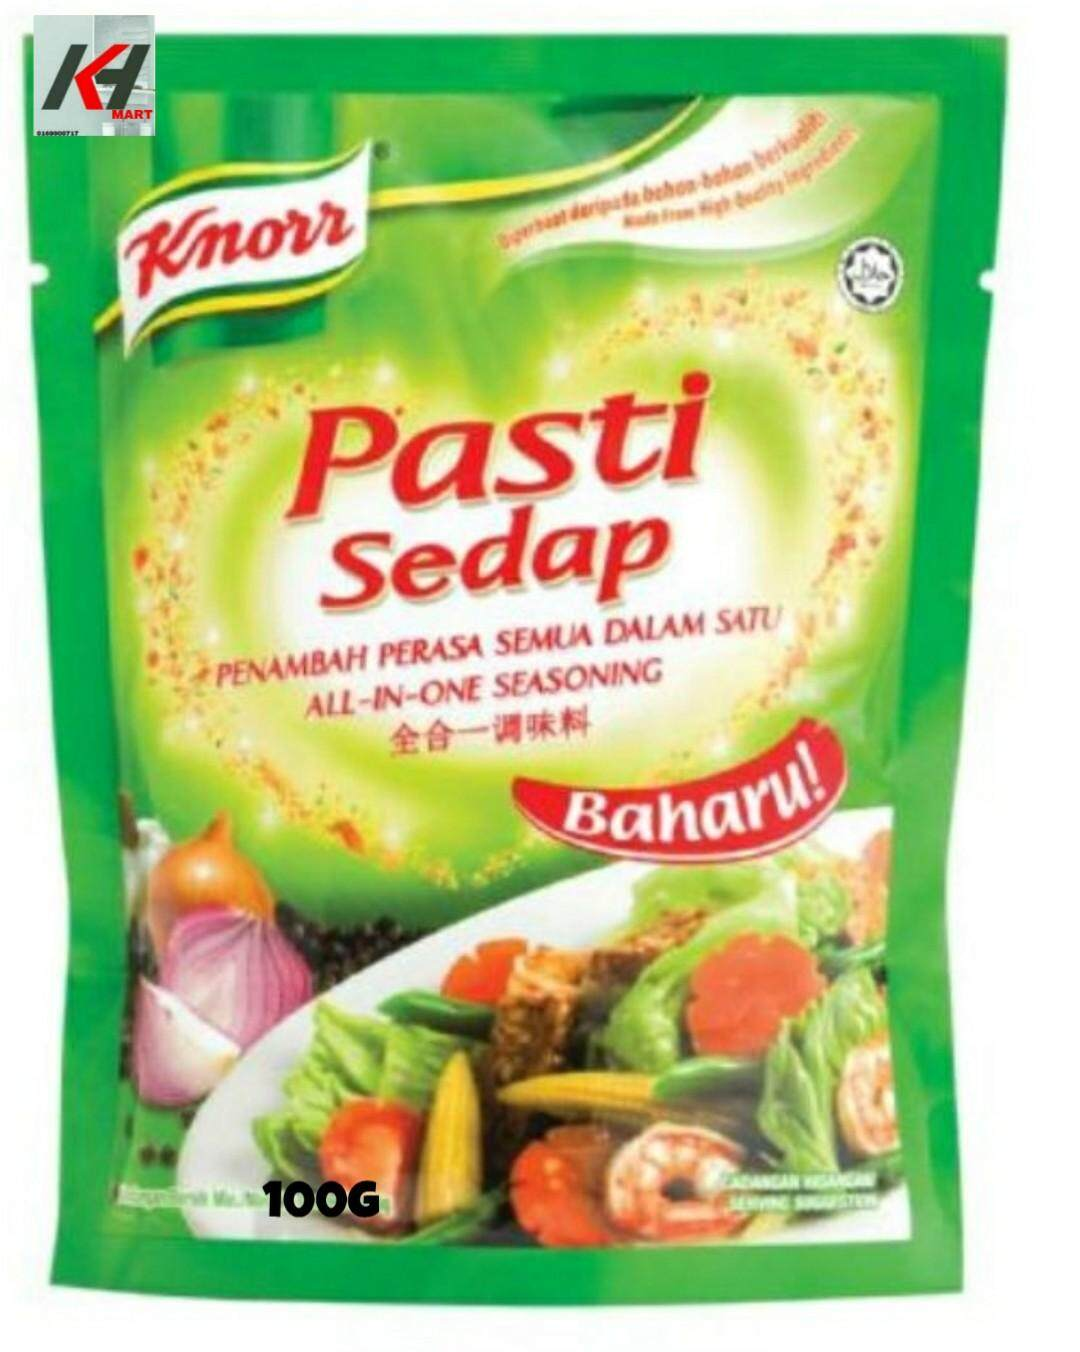 KNOR RALL IN ONE SEASONING - PASTI SEDAP 100G READY STOCK